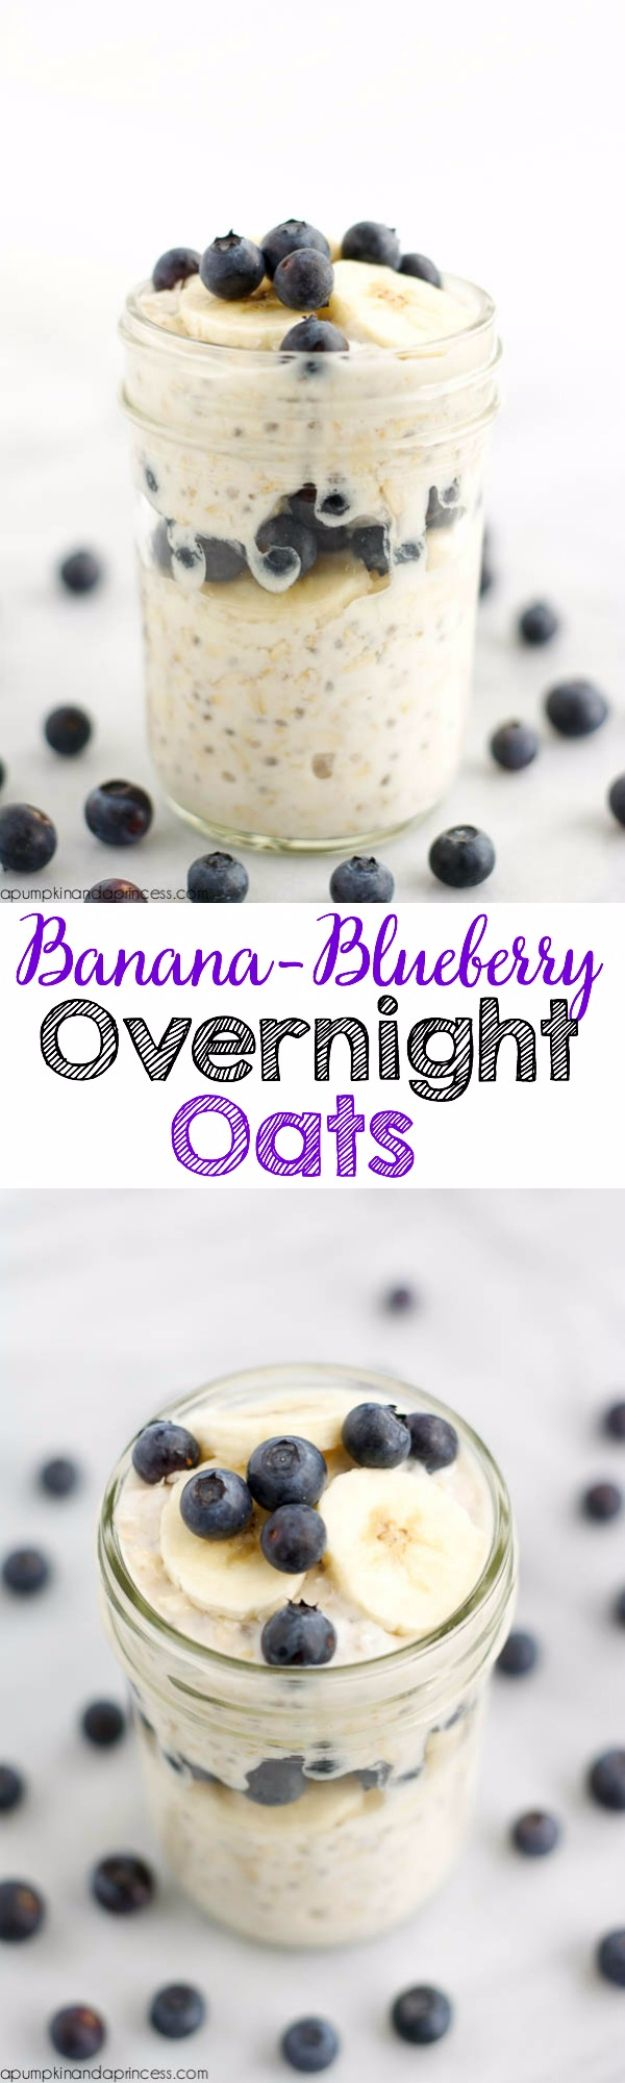 Best Recipes in A Jar - Banana Blueberry Overnight Oats In A Jar - DIY Mason Jar Gifts, Cookie Recipes and Desserts, Canning Ideas, Overnight Oatmeal, How To Make Mason Jar Salad, Healthy Recipes and Printable Labels http://diyjoy.com/best-recipes-in-a-jar